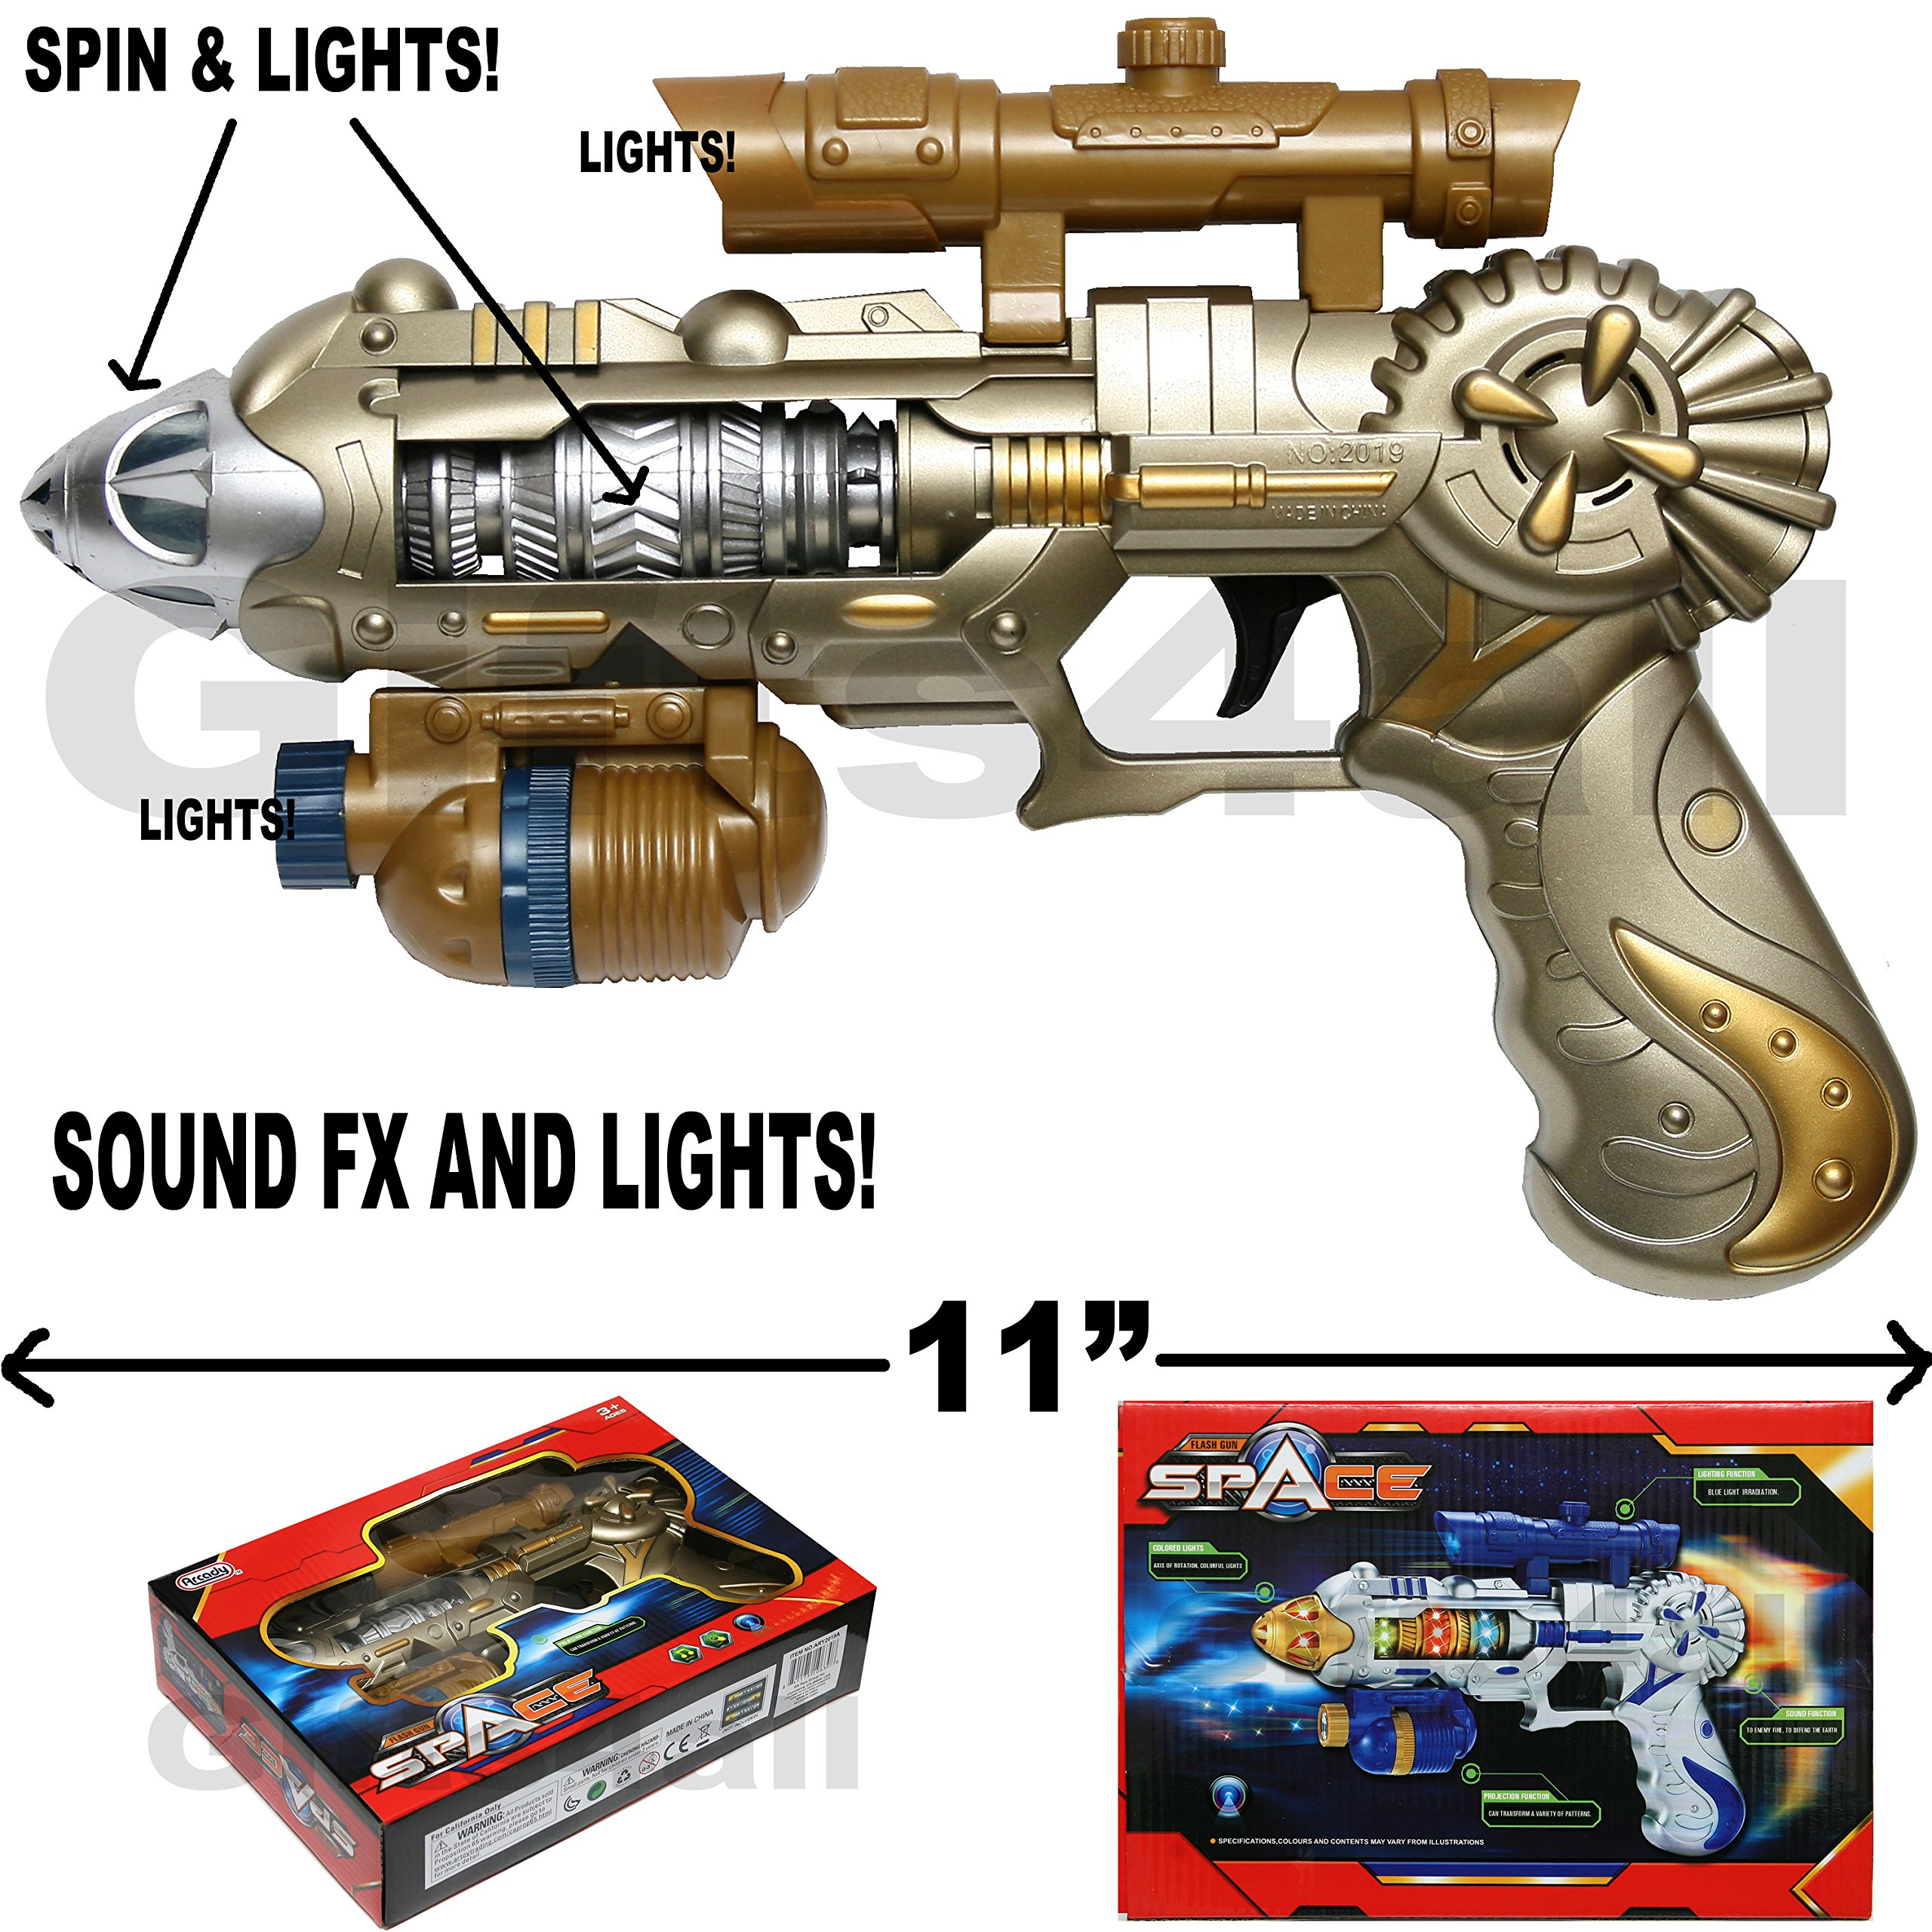 COLOSSUS LIGHT-UP SPACE GUN TOY WEAPON FX SOUNDS AND LIGHTS